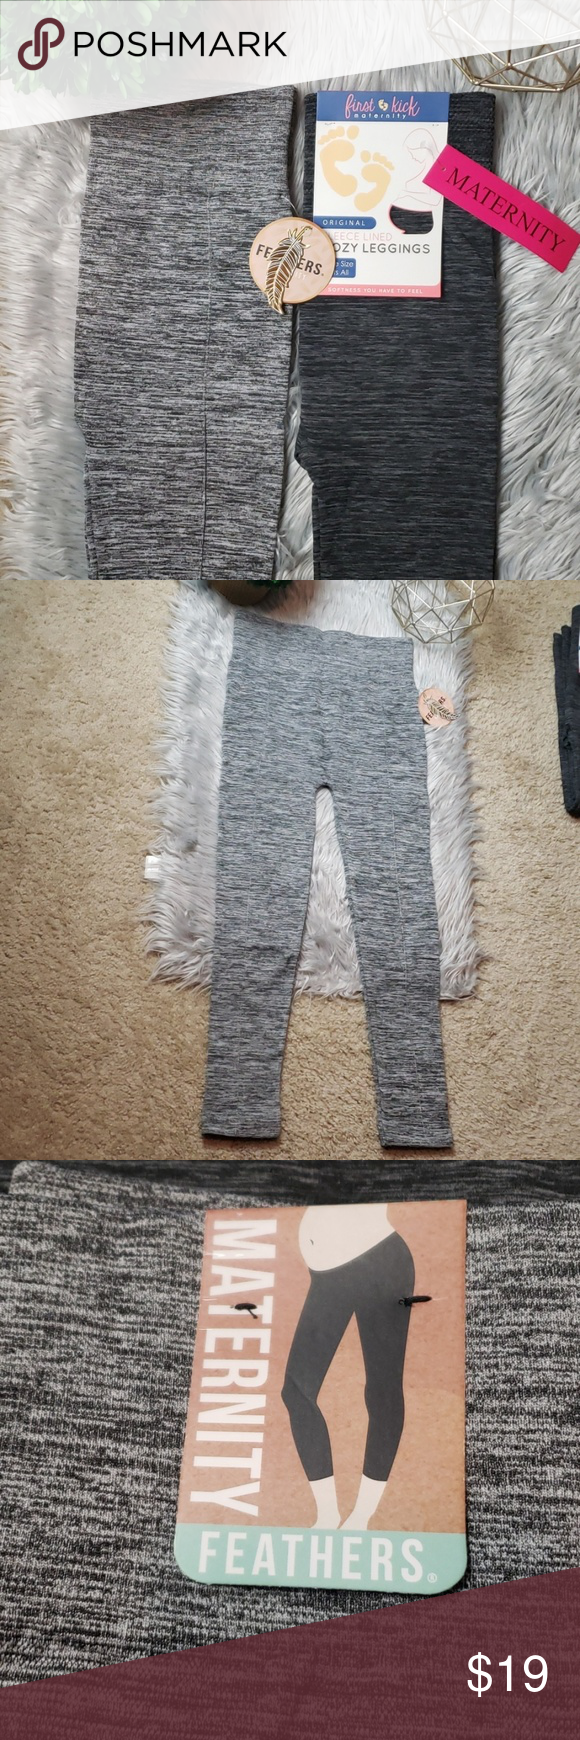 24564e16192fb [2] Fleece Lined Cozy Maternity Leggings First Kick   One Size Fits All    67% Polyester 27% Nylon 6% Spandex   13